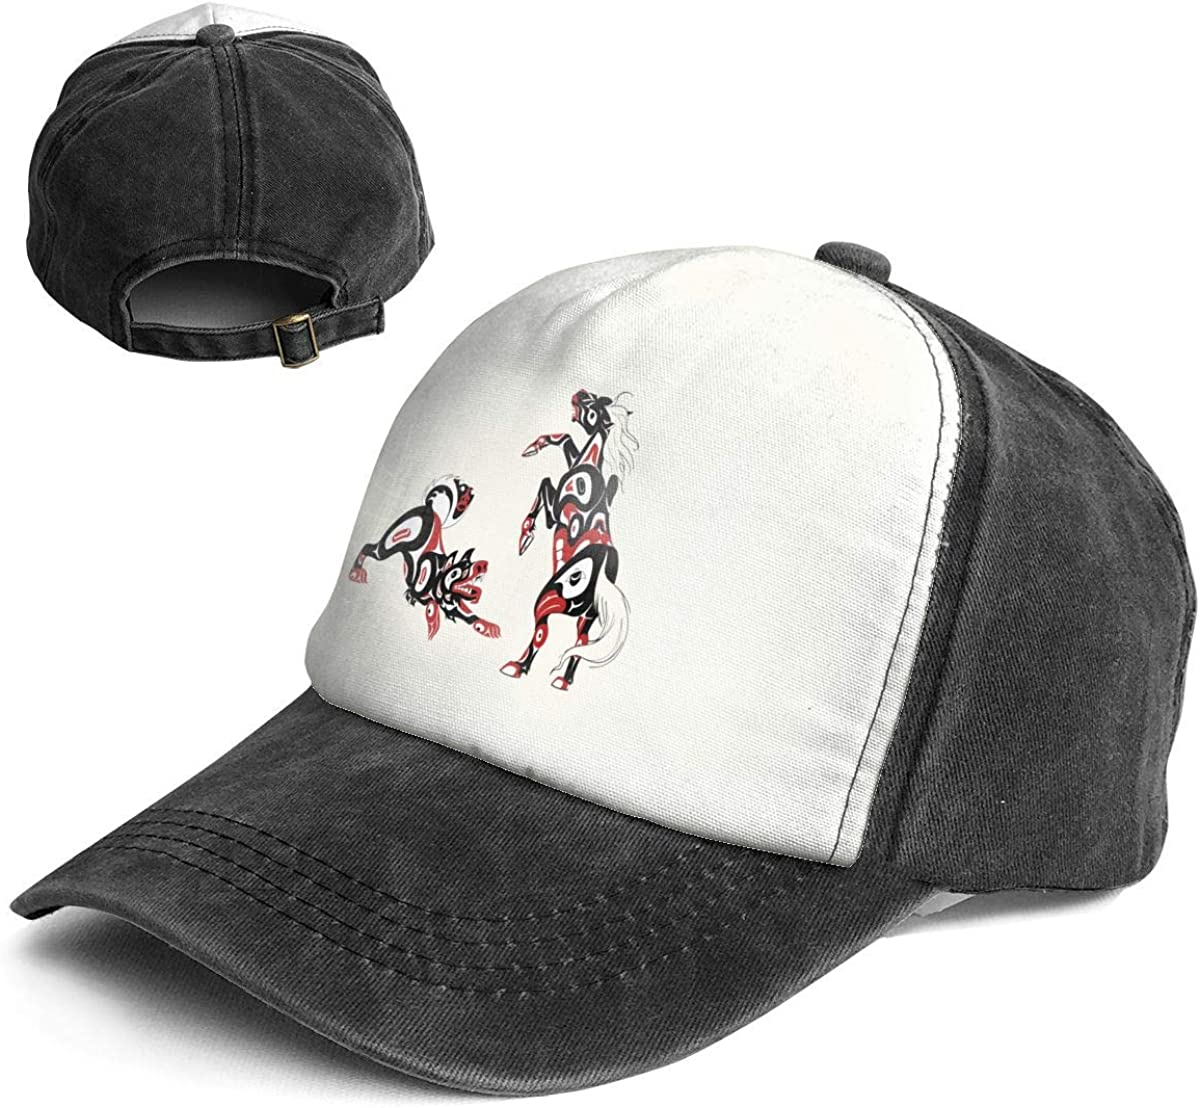 Art of Horse and Dog Trend Printing Cowboy Hat Fashion Baseball Cap for Men and Women Black and White